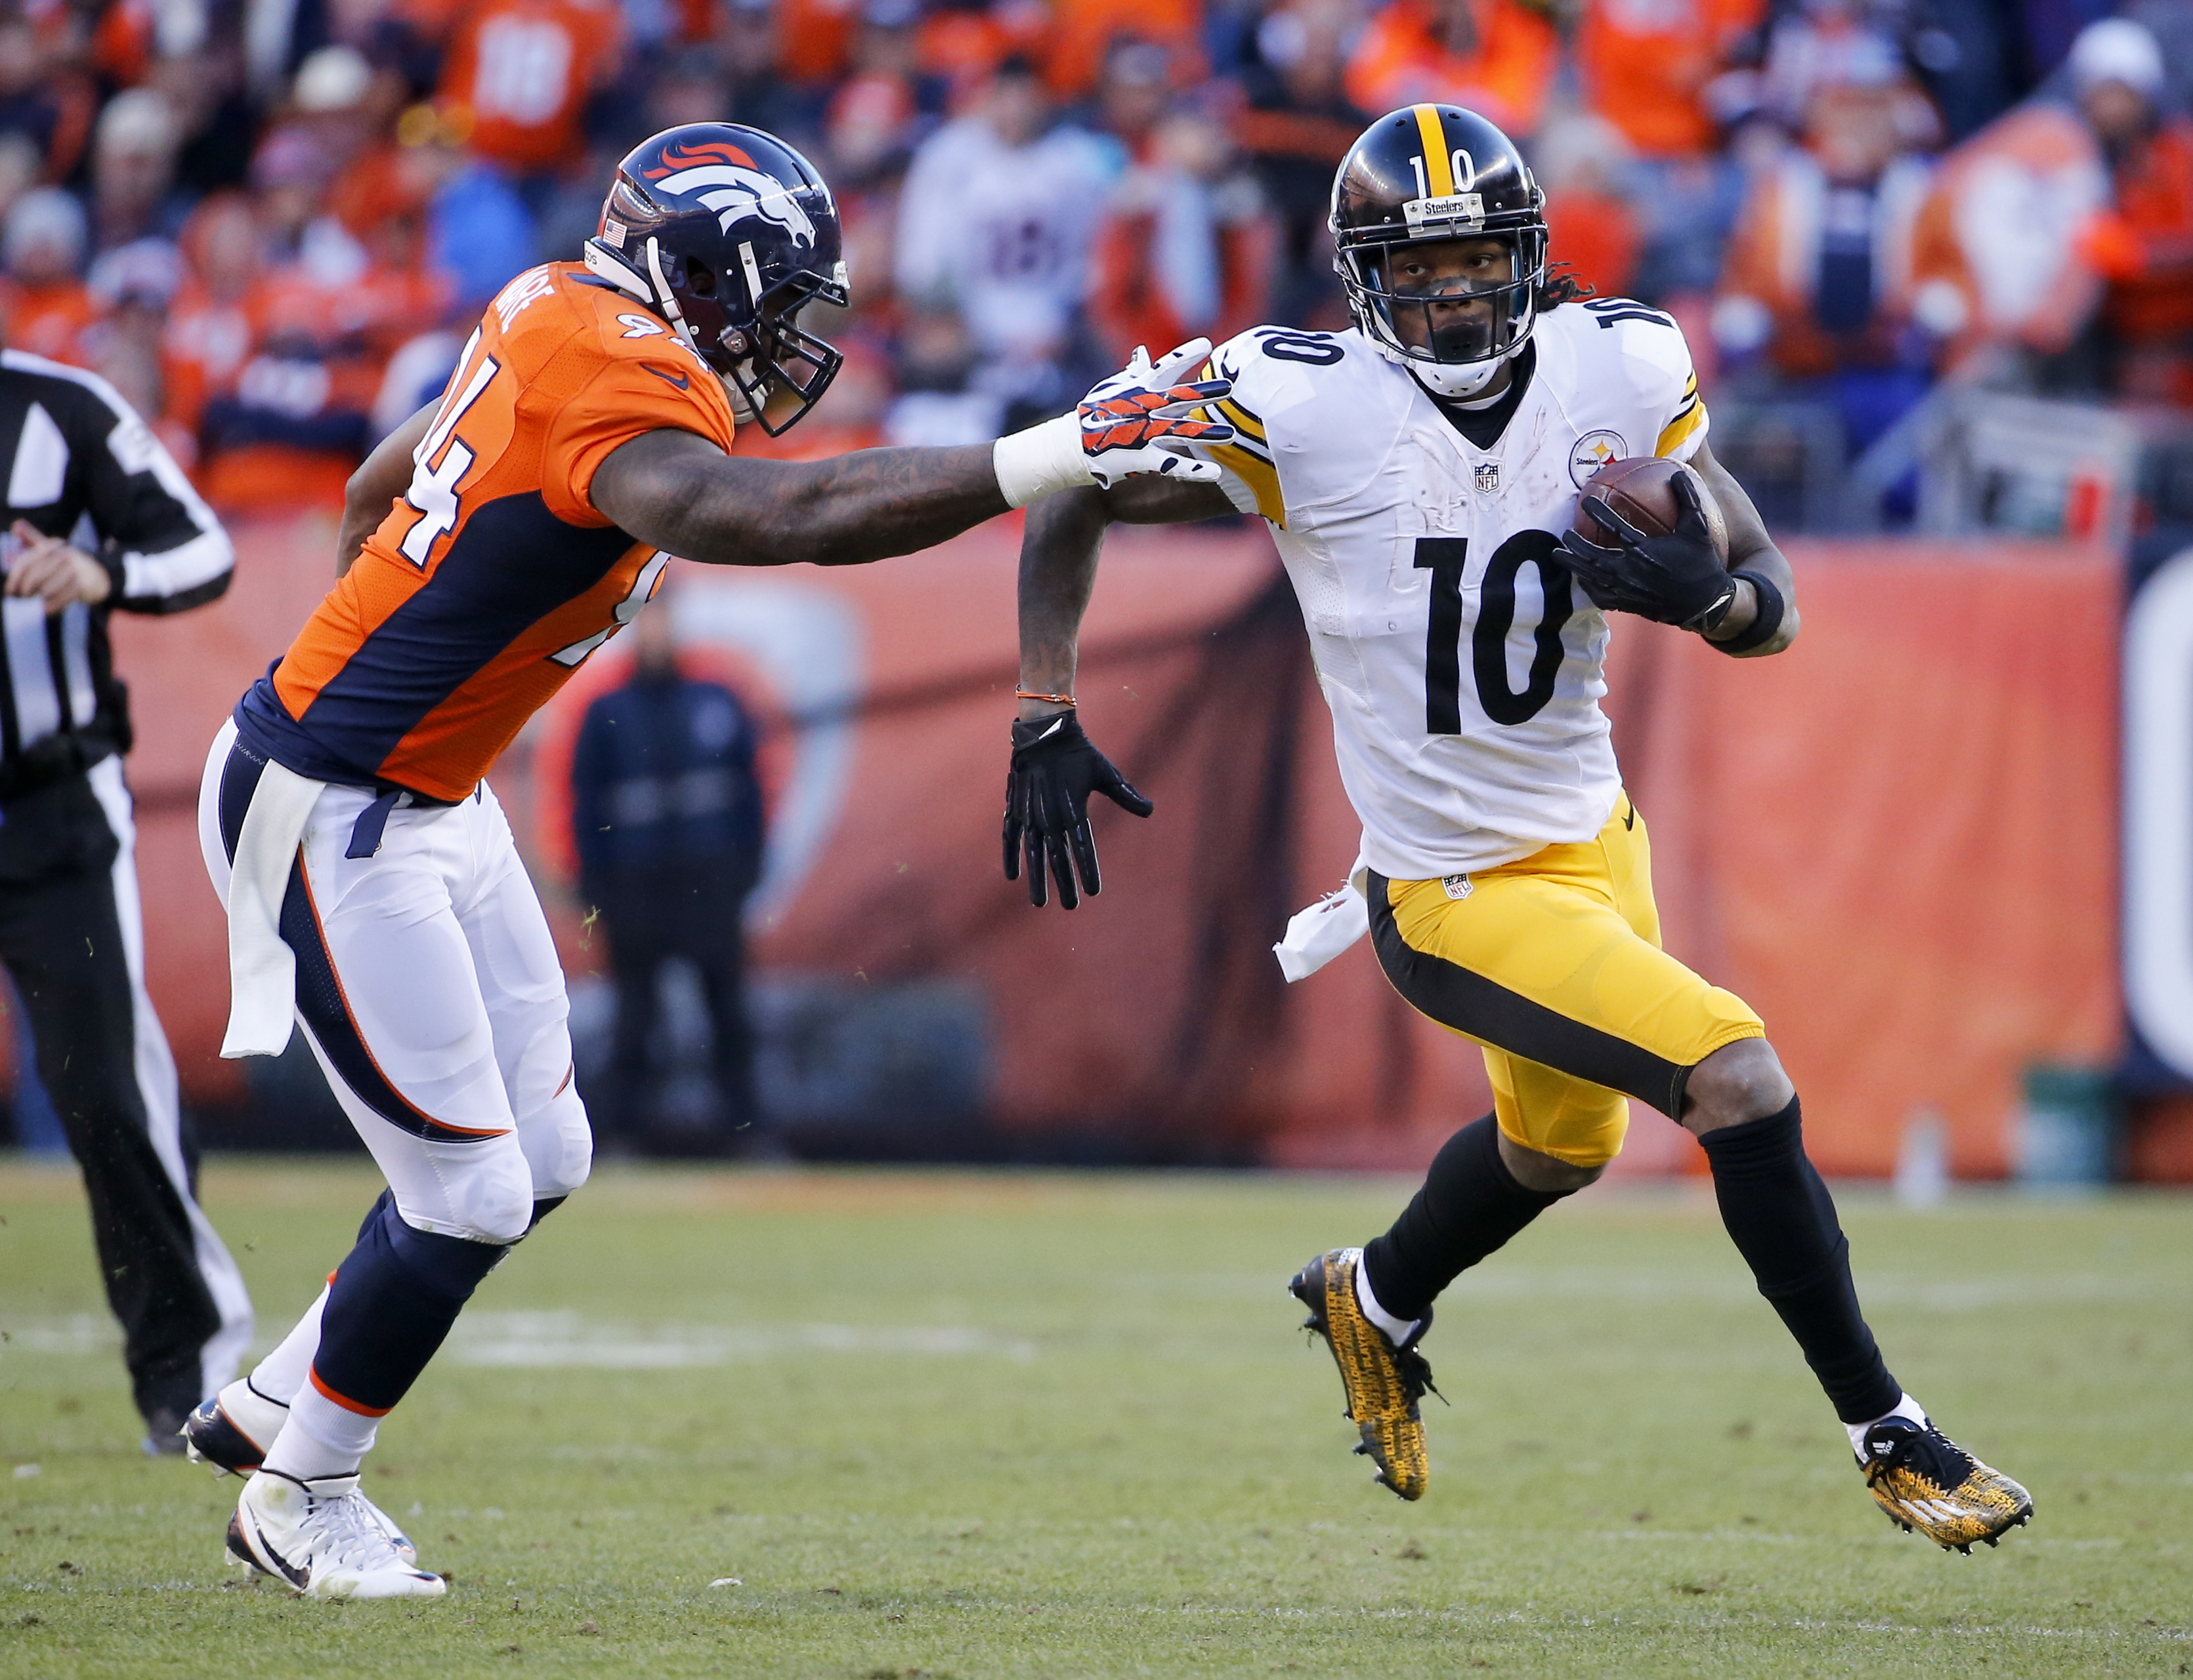 Pittsburgh Steelers wide receiver Martavis Bryant, runs past Denver Broncos outside linebacker DeMarcus Ware during the first half in an NFL football divisional playoff game, Sunday, Jan. 17, 2016, in Denver. (AP Photo/Jack Dempsey)